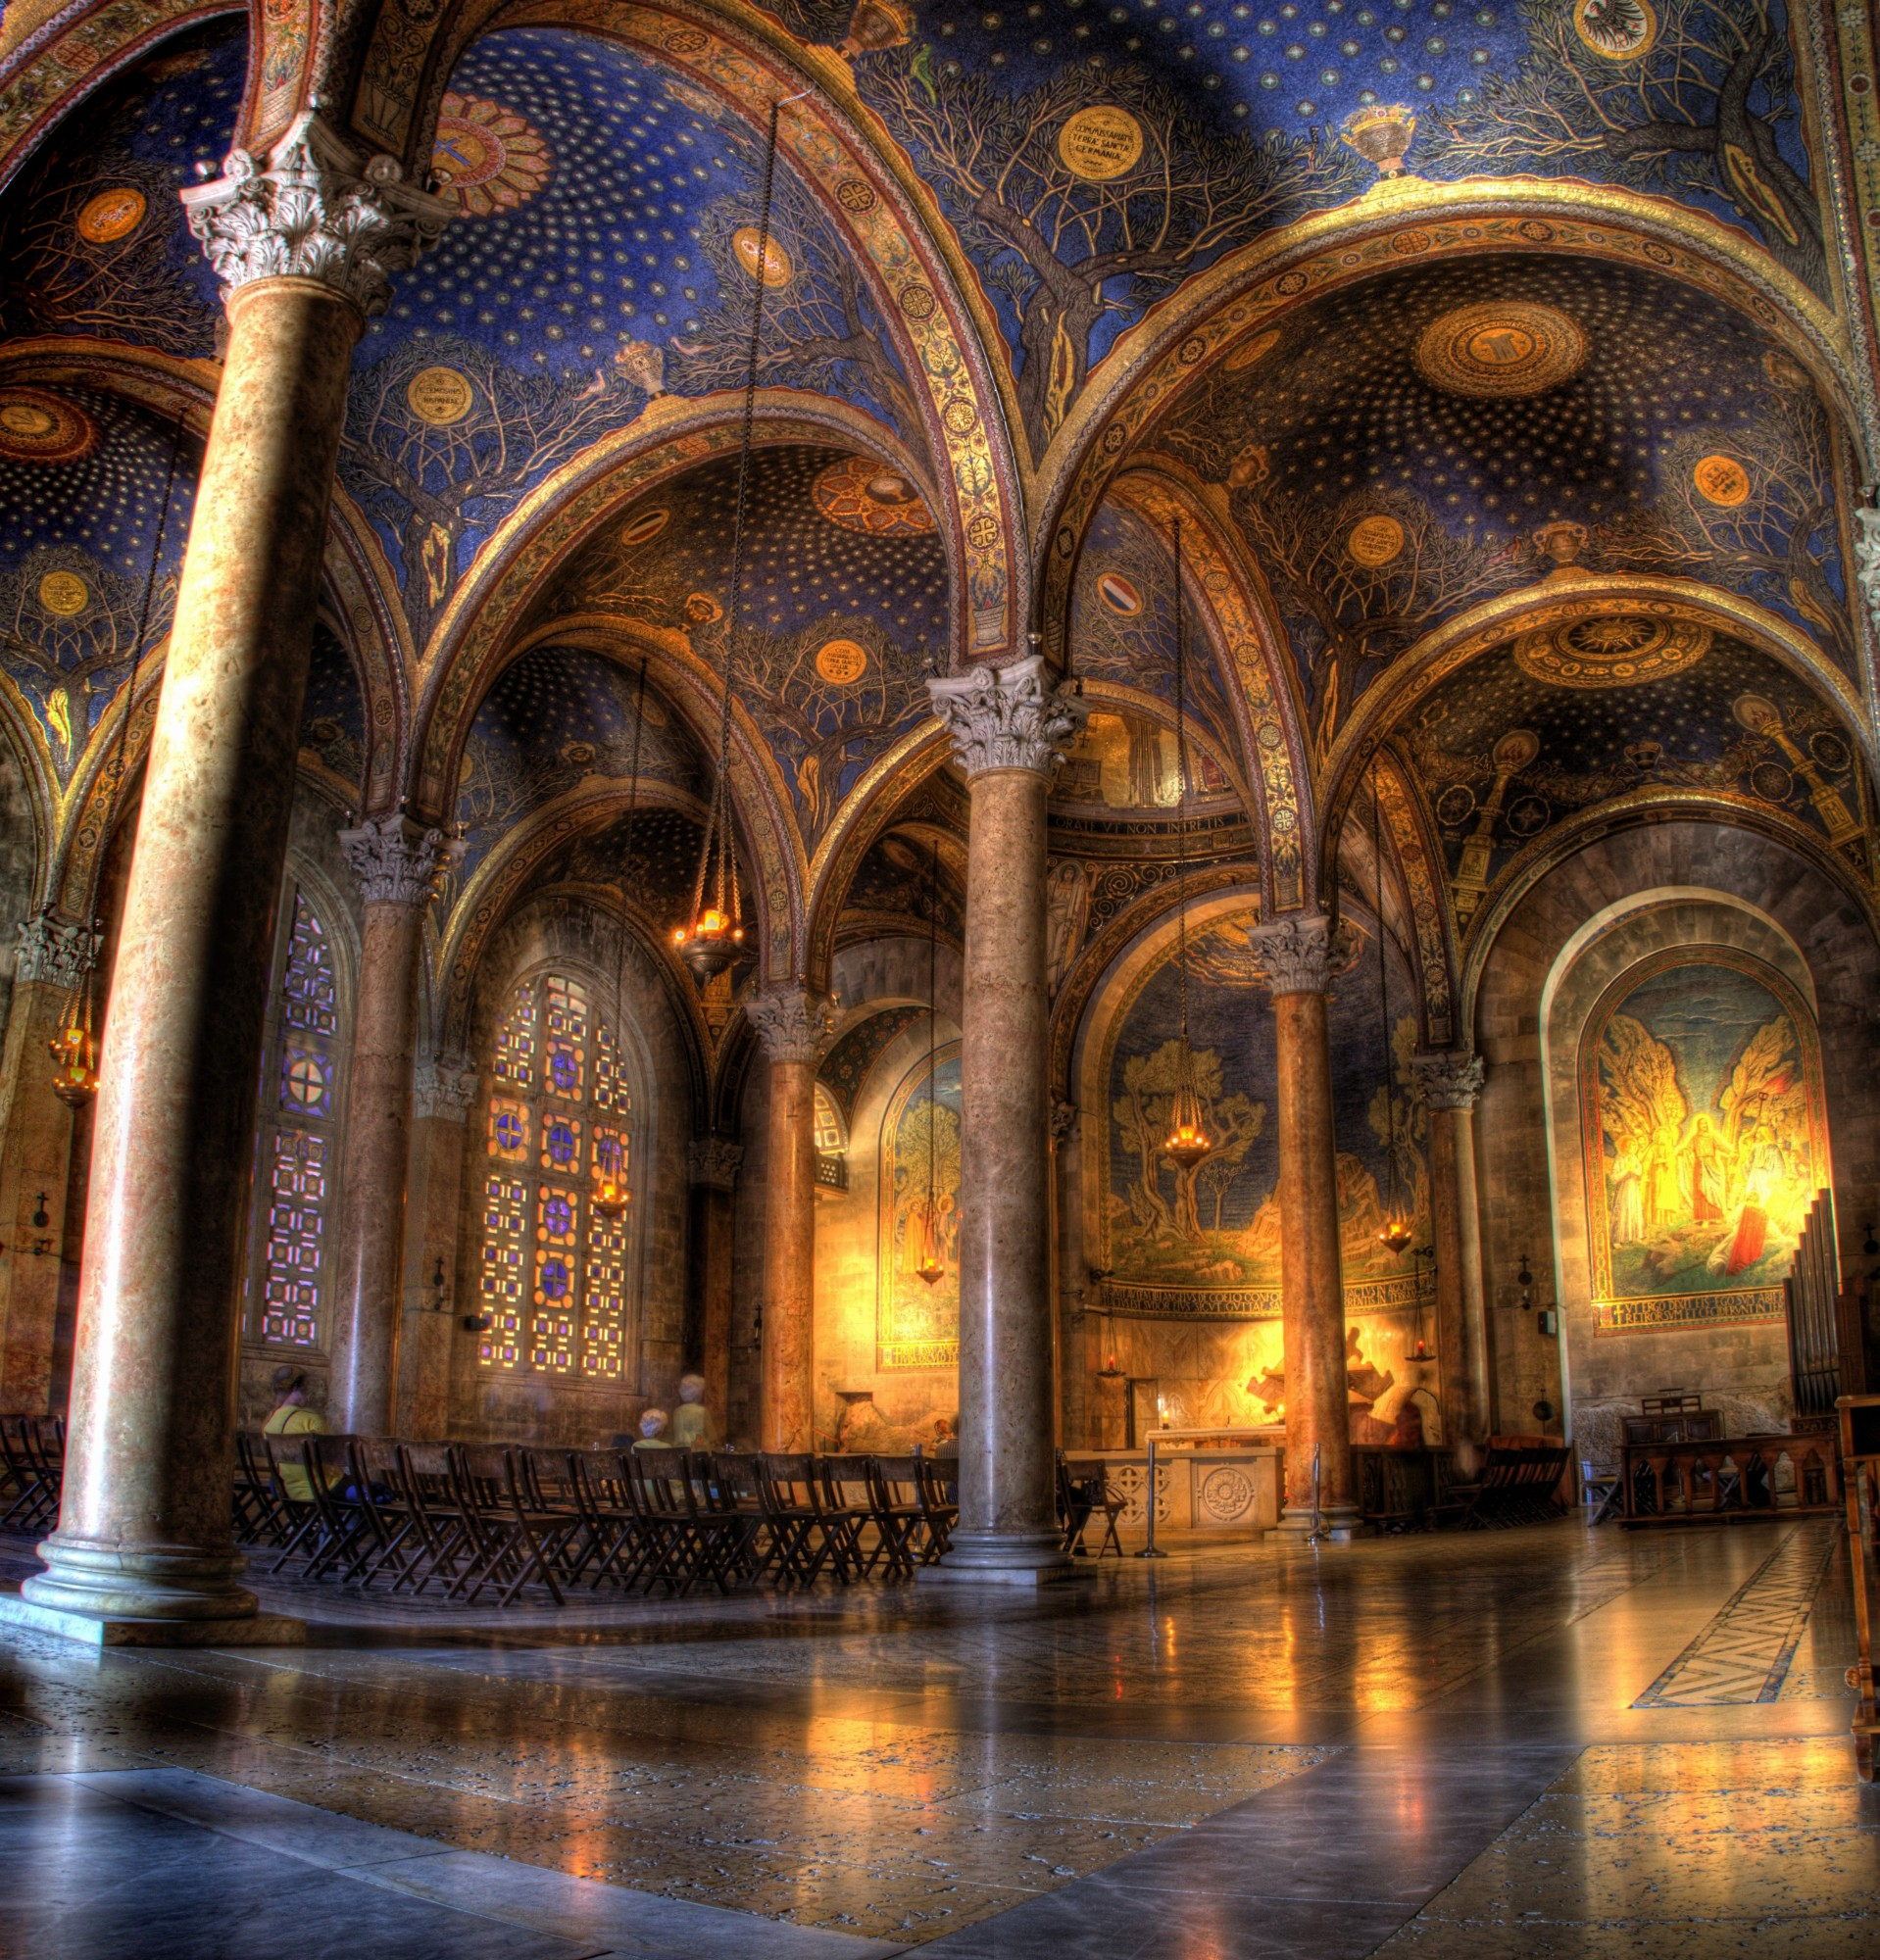 The interior of the Church of All Nations at Gethsemane